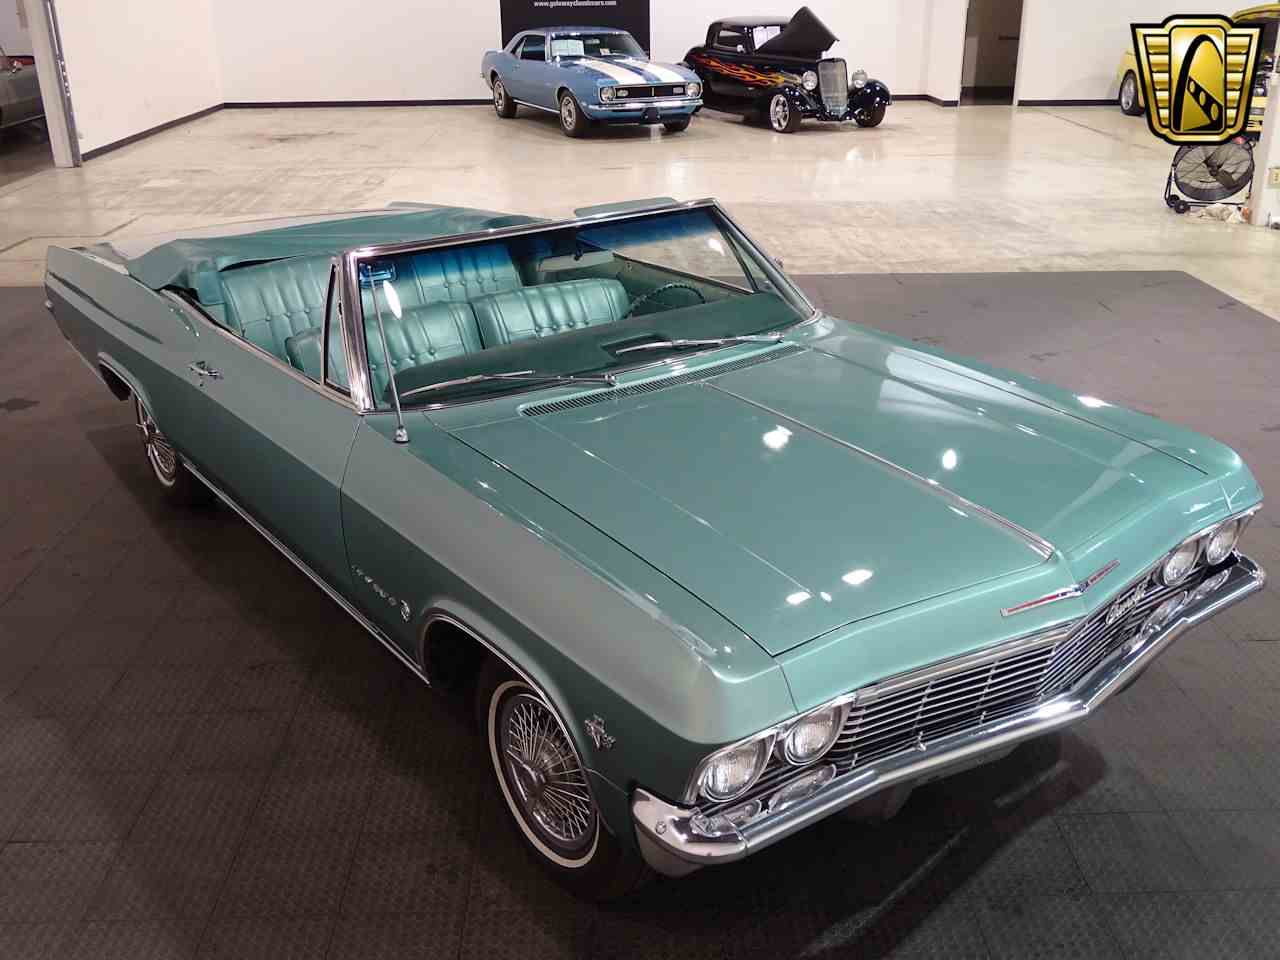 Large Picture of Classic '65 Chevrolet Impala located in Indiana - $34,995.00 Offered by Gateway Classic Cars - Indianapolis - L5YV